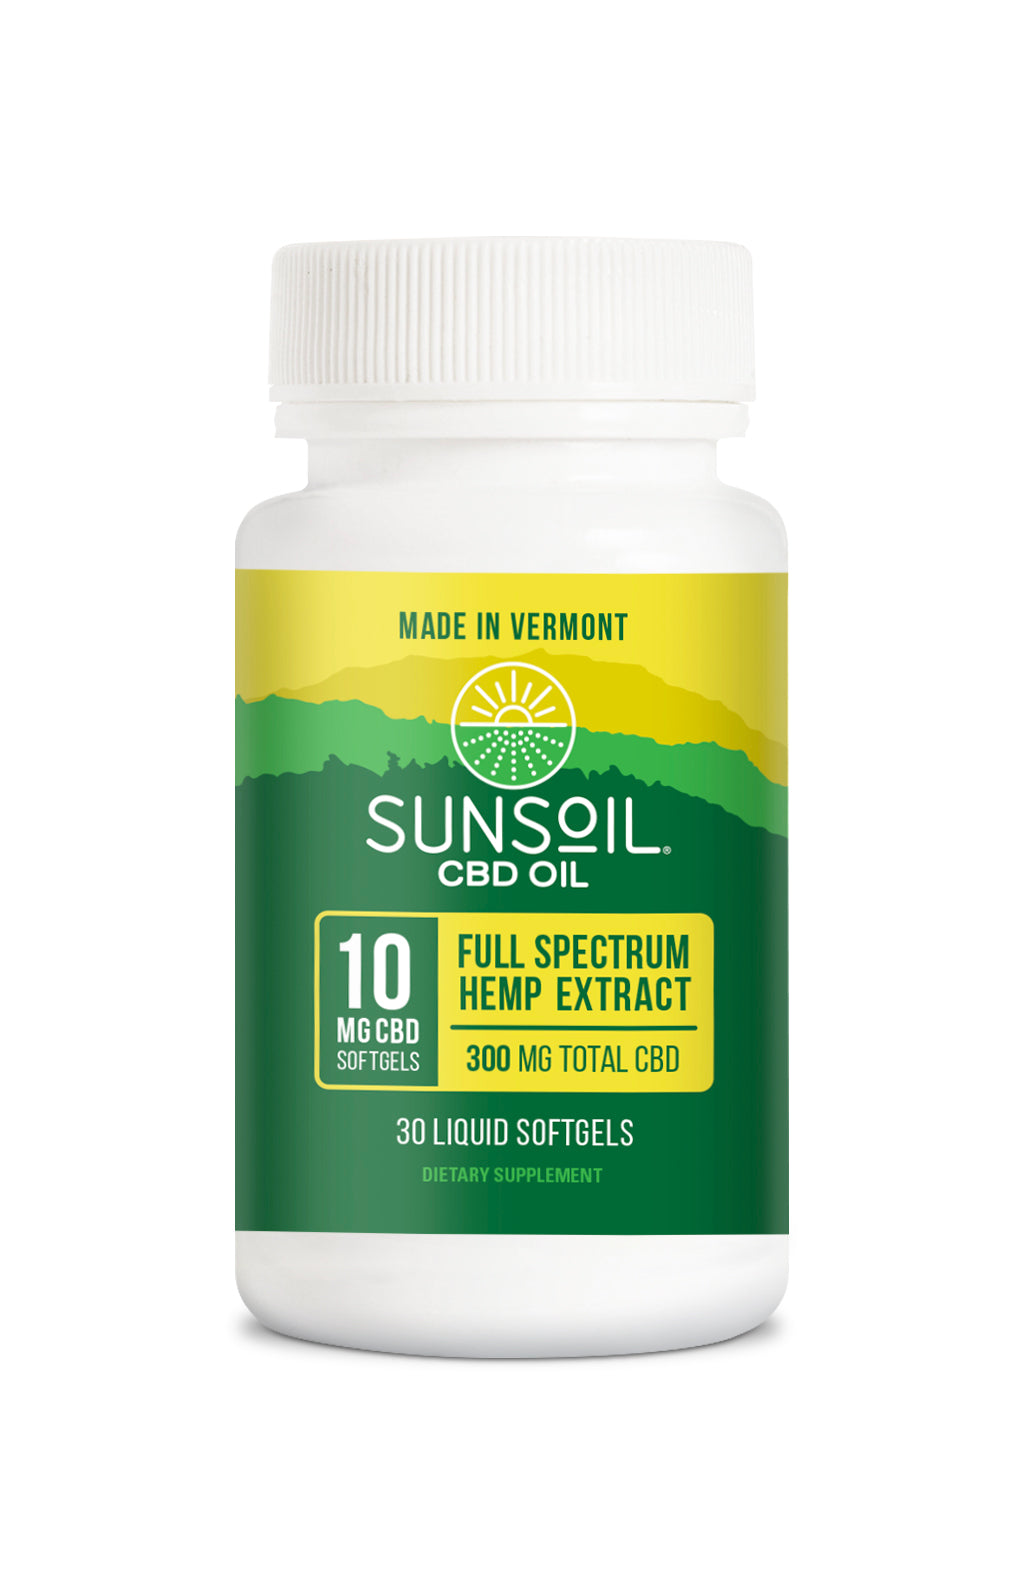 Sunsoil CBD Oil - 10 MG CBD Softgel